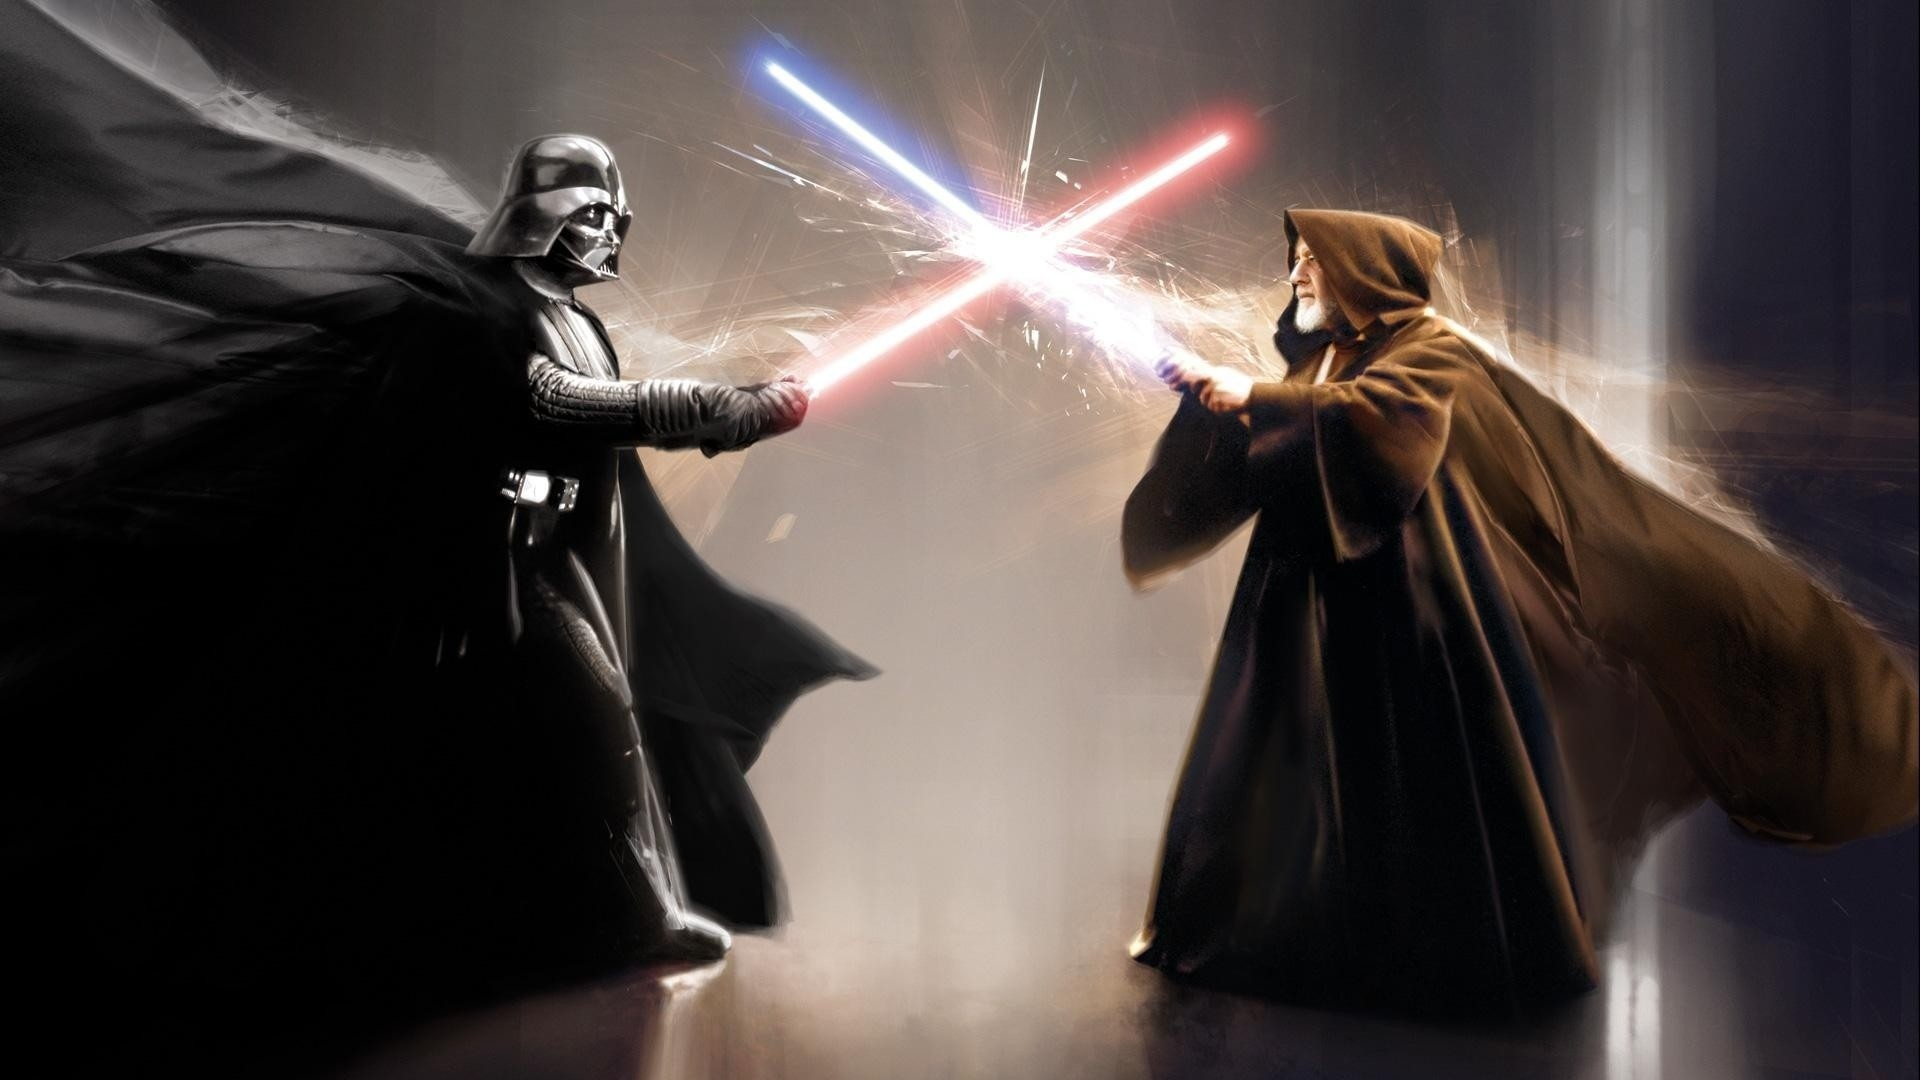 1920x1080 Darth Vader Obi Wan Kenobi movies star wars sci-fi weapons lightsaber  battle video games